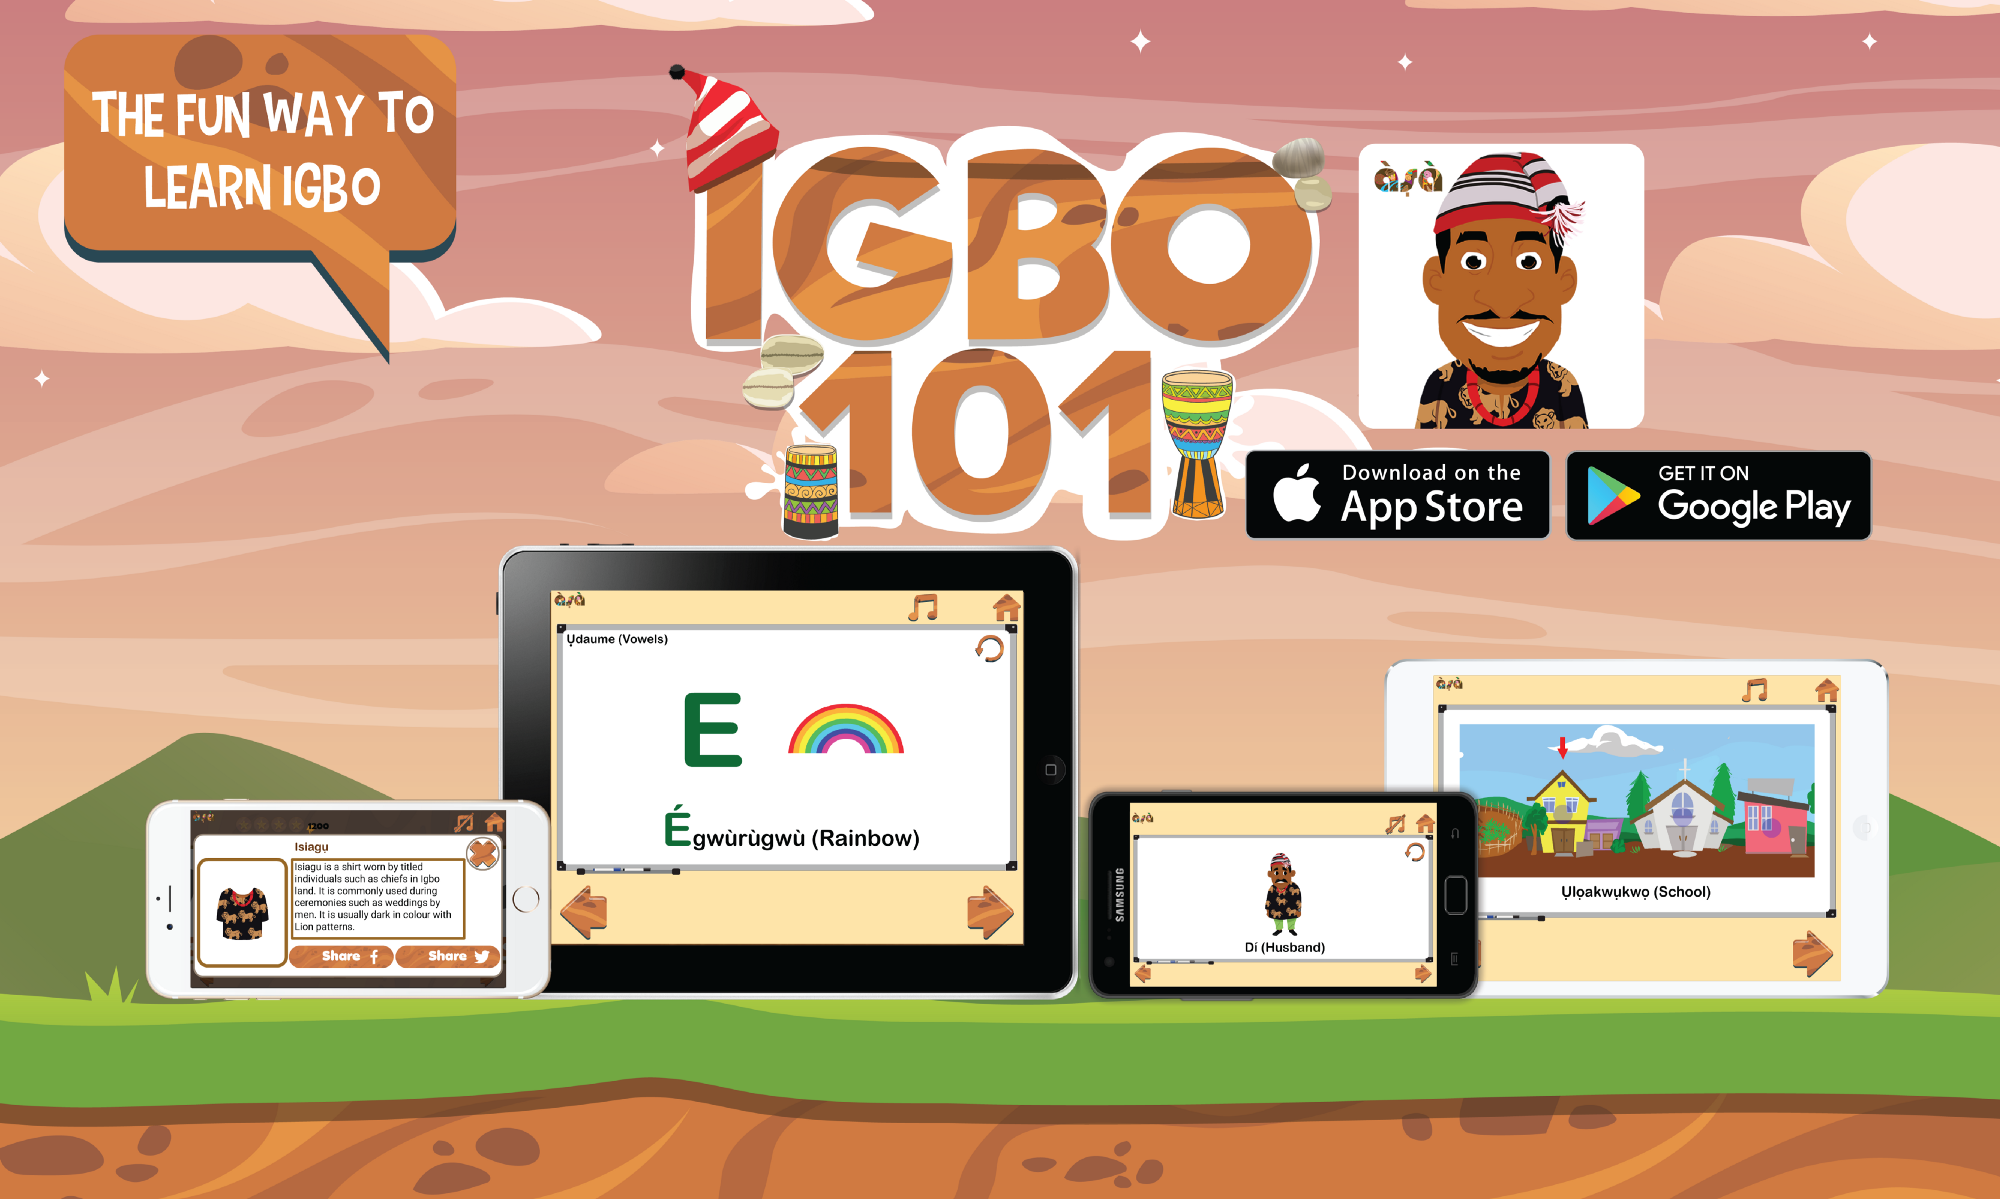 New years greeting with igbo101 v20 the igbo language learning new years greeting with igbo101 v20 the igbo language learning app for kids kristyandbryce Gallery